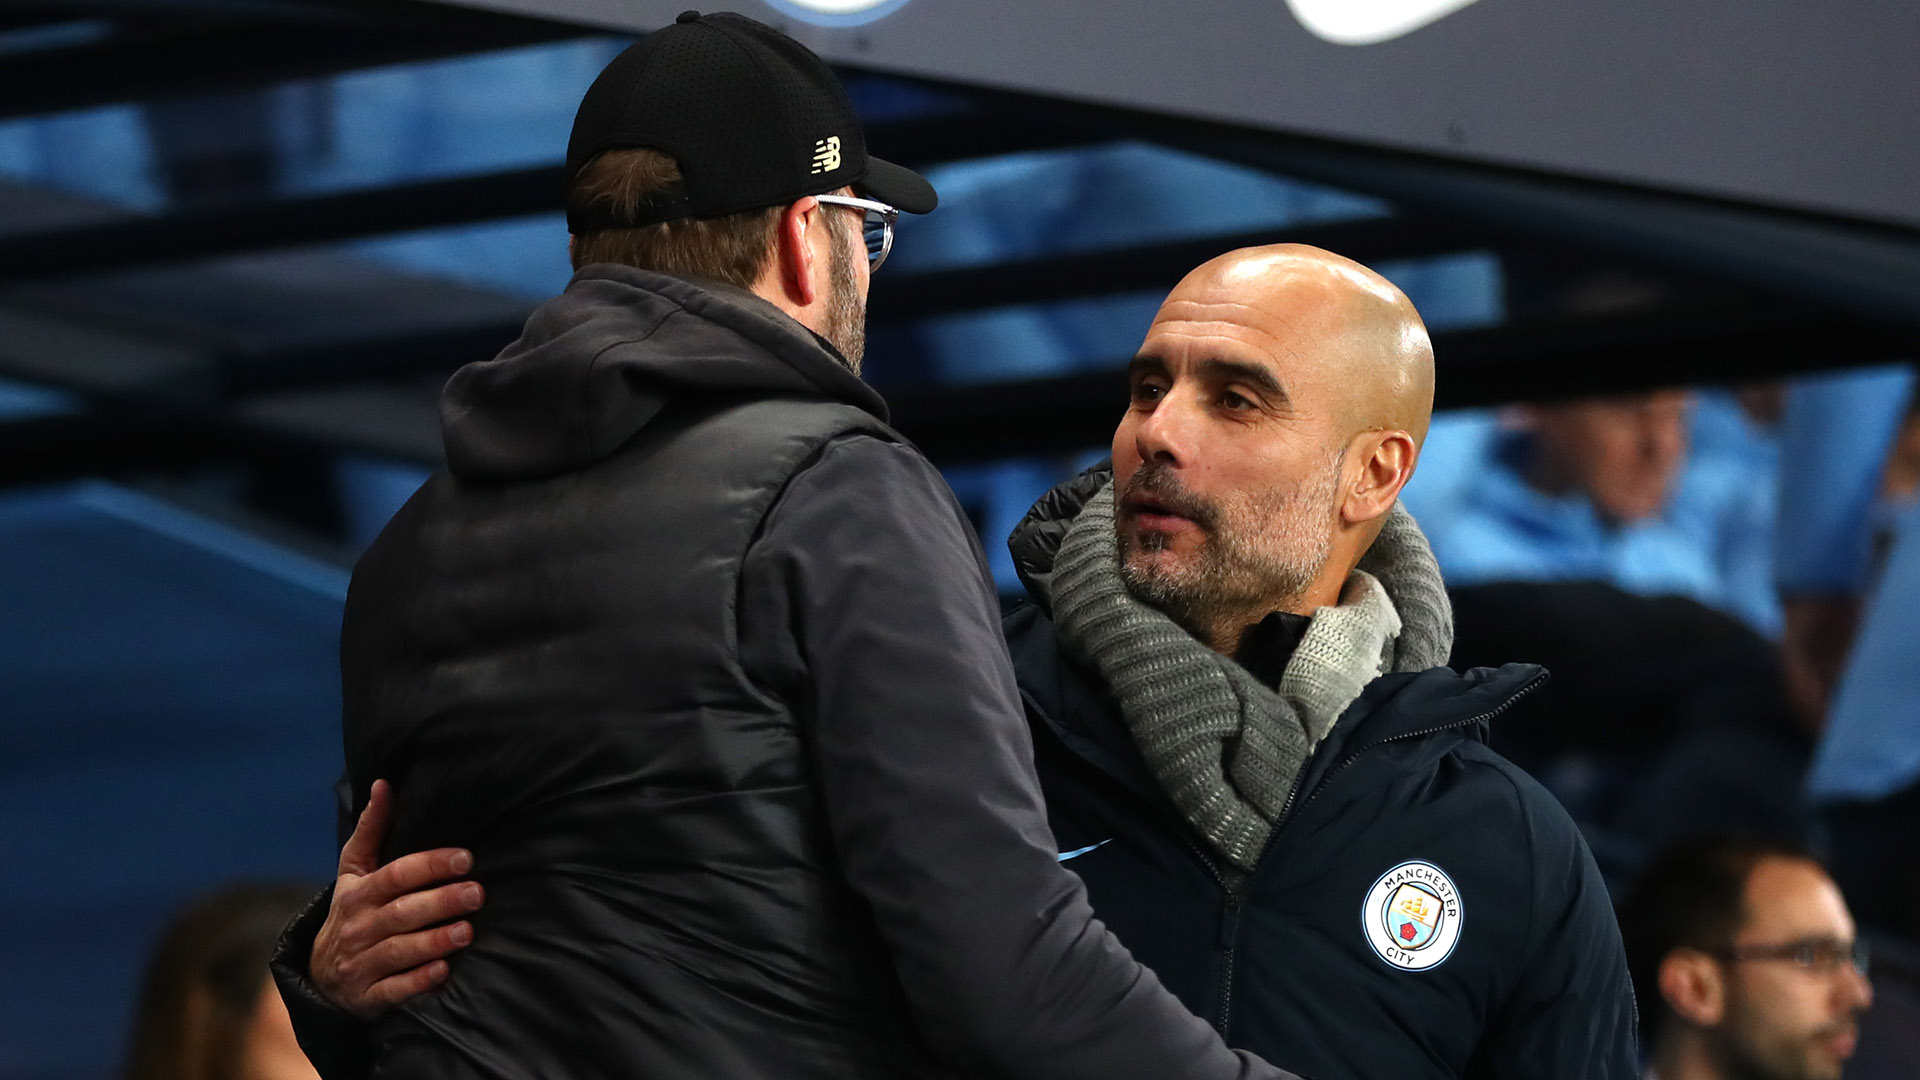 Pep Guardiola is the best manager in the world, says Jurgen Klopp